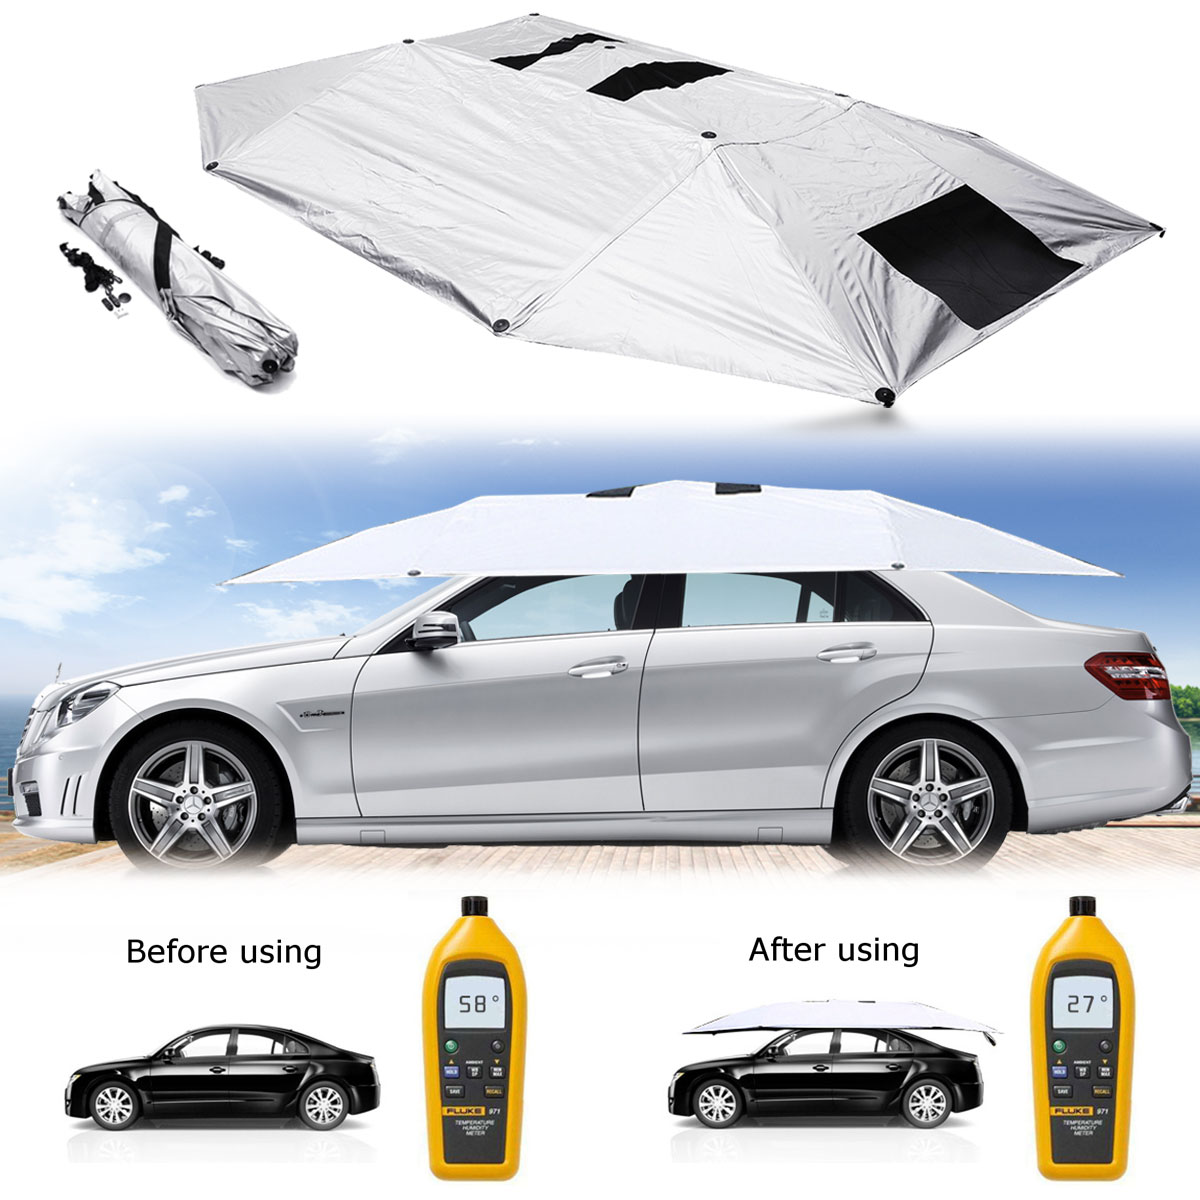 Portable Removable Outdoor Car Tent Umbrella Roof Sunshade Cover UV Protection Car Sun Shade Car Accessories Foil Sun Protection summer can be folded anti uv sun hat sun protection for children to cover the sun with a large cap on the beach bike travel